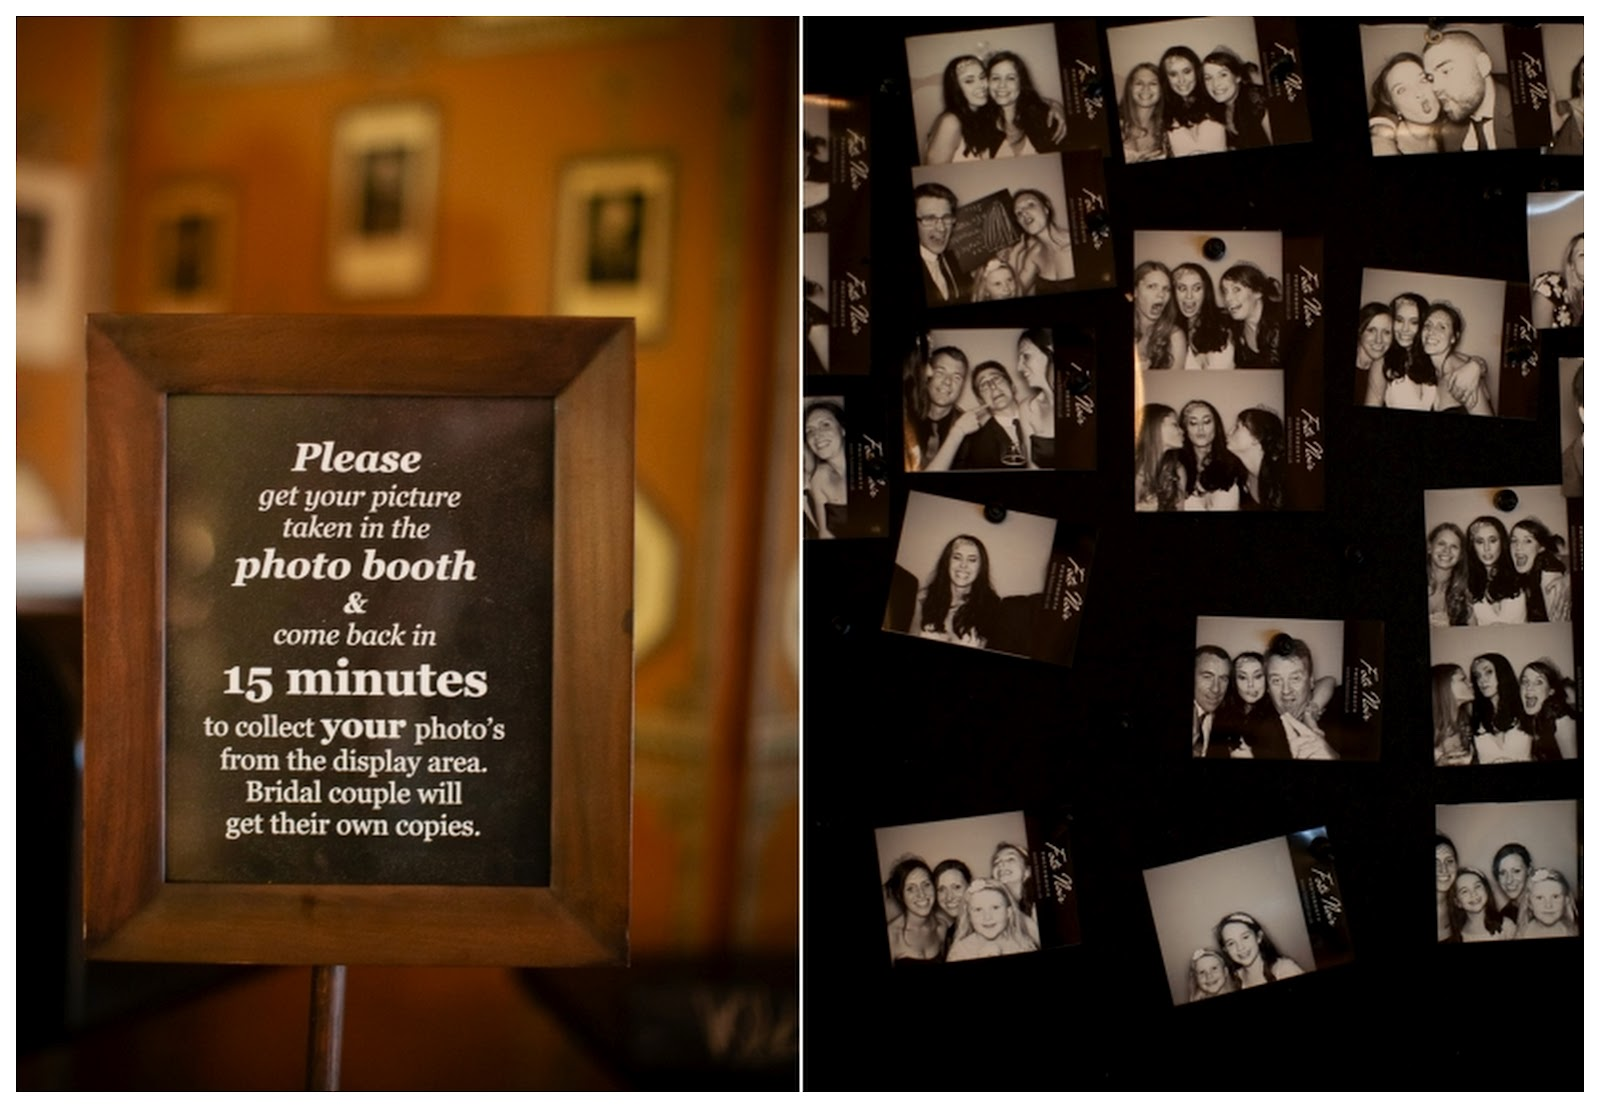 Based In London Foto Noir Are Happy To Install Their Photobooth Anywhere The UK